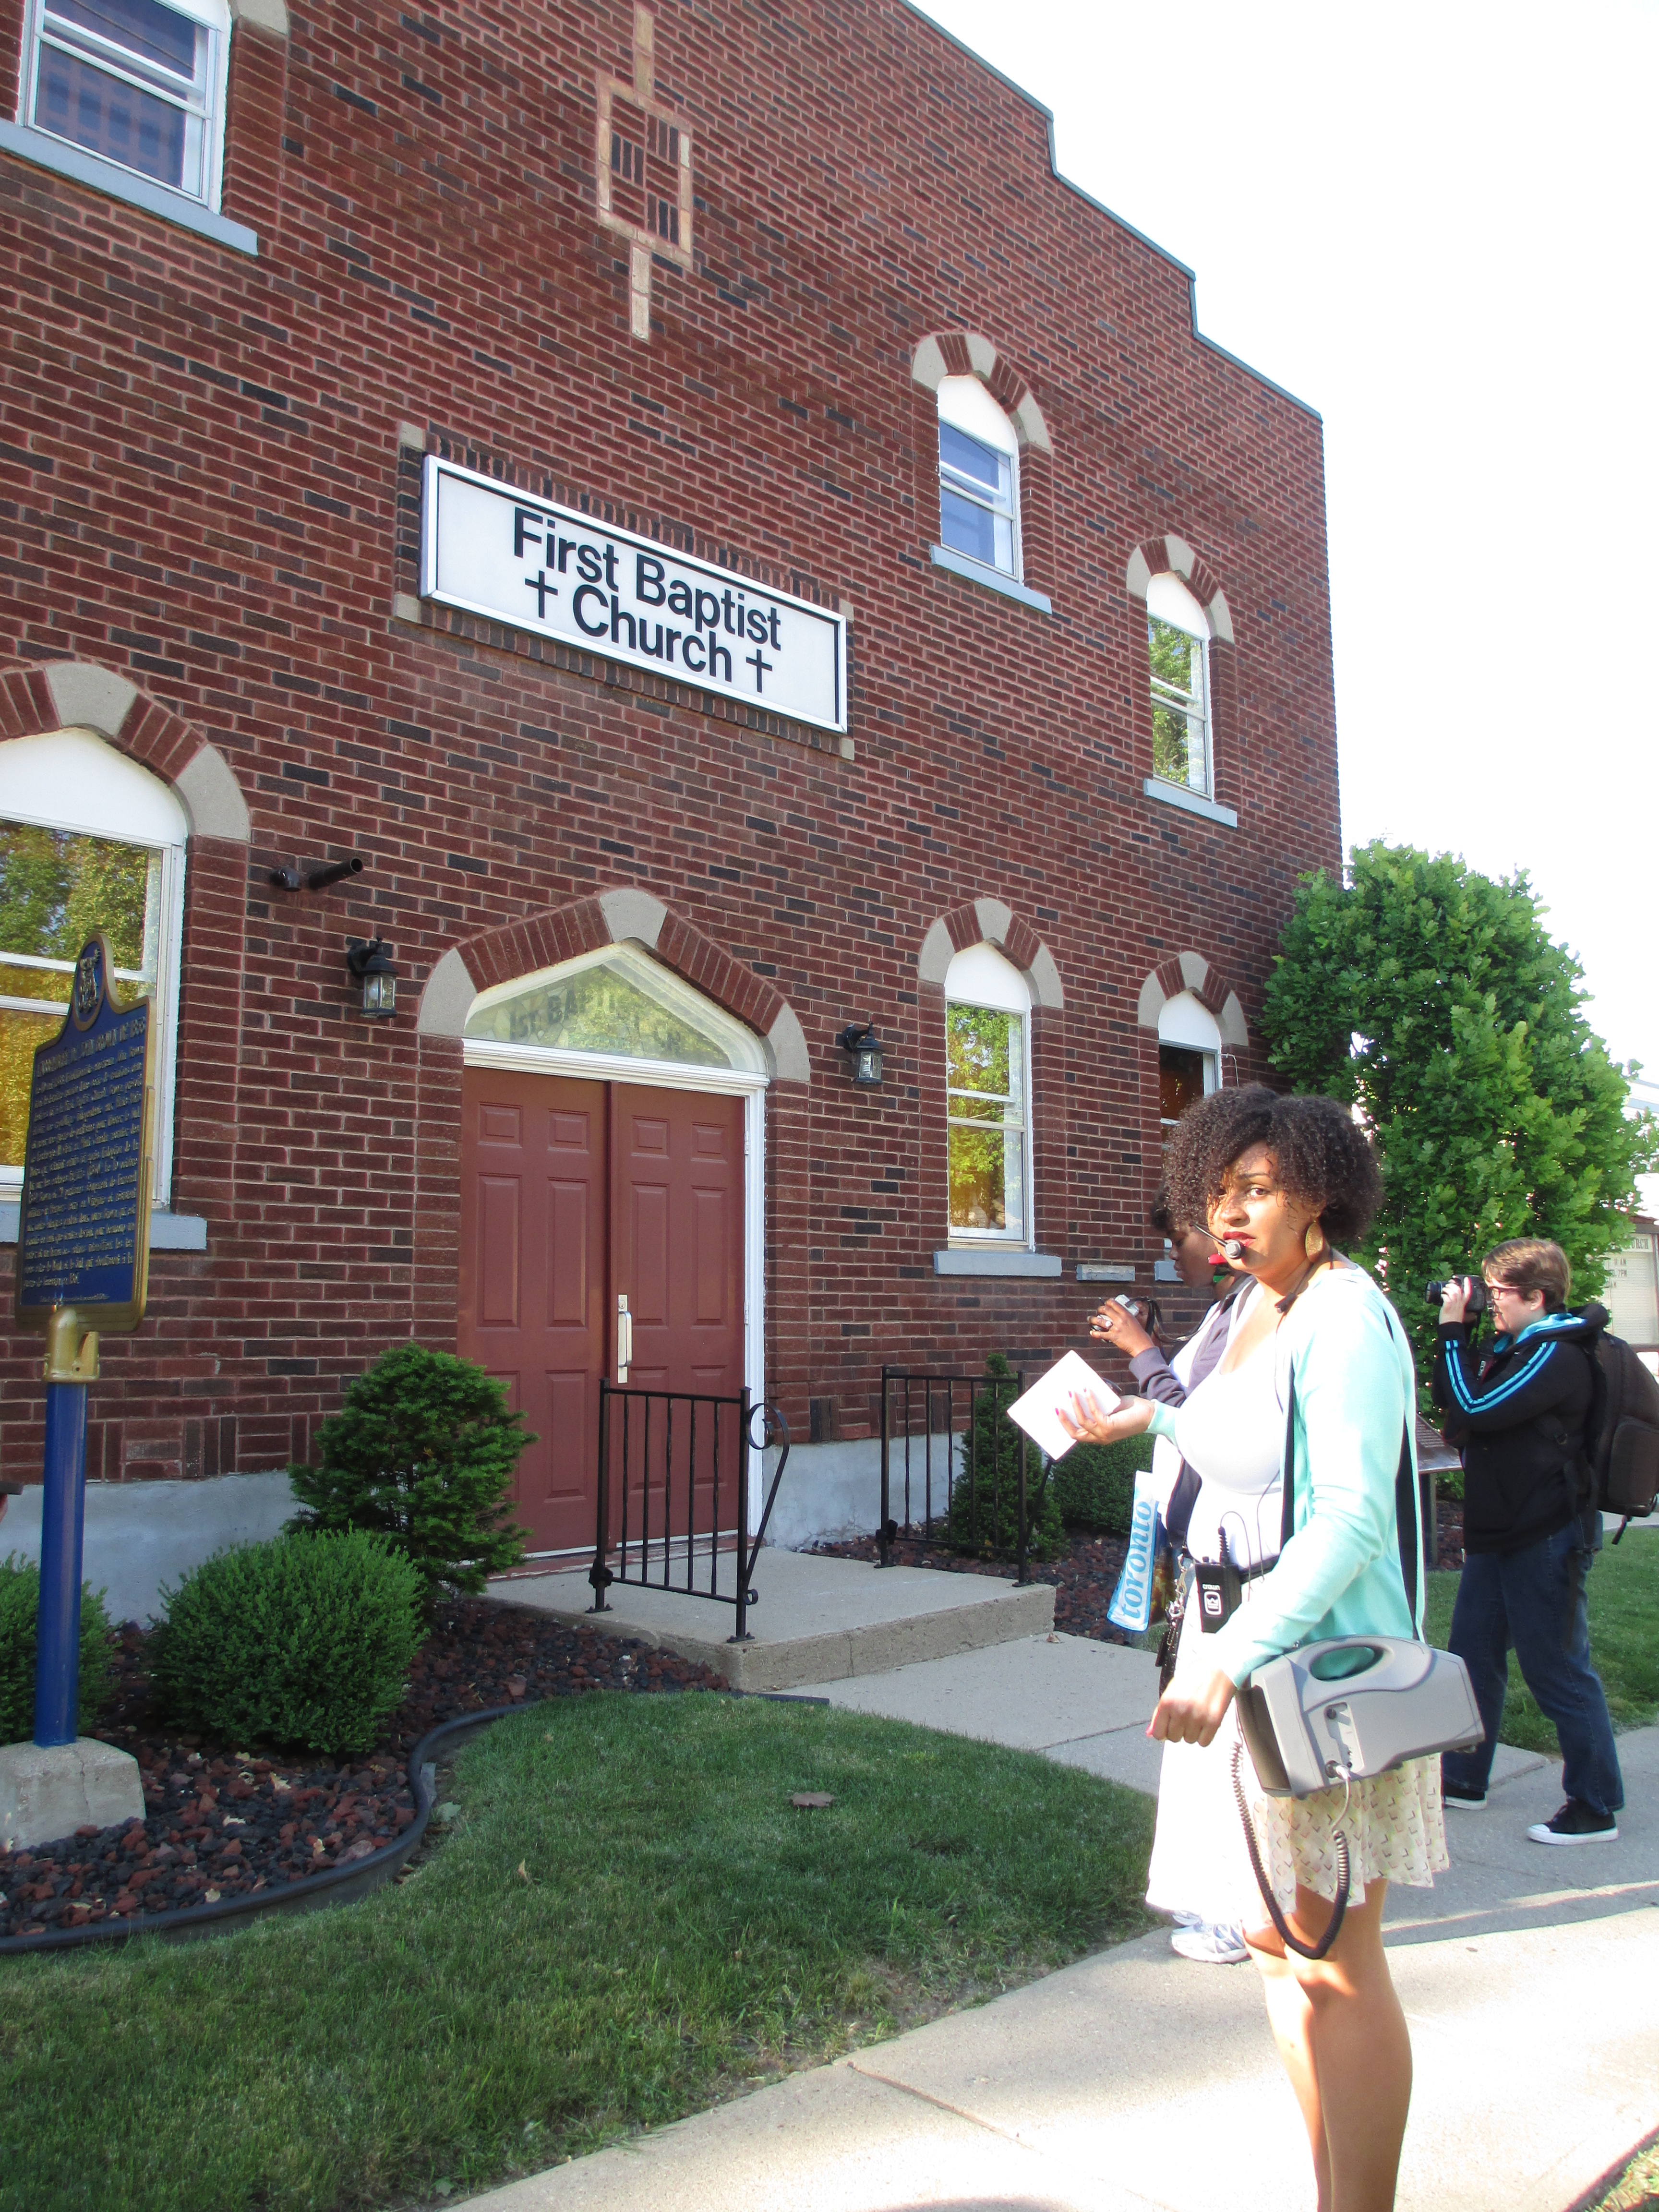 Ms. Blair Newby stops in front of the First Baptist Church in Chatham where John Brown held a convention and finalized plans to attack Harpers Ferry.